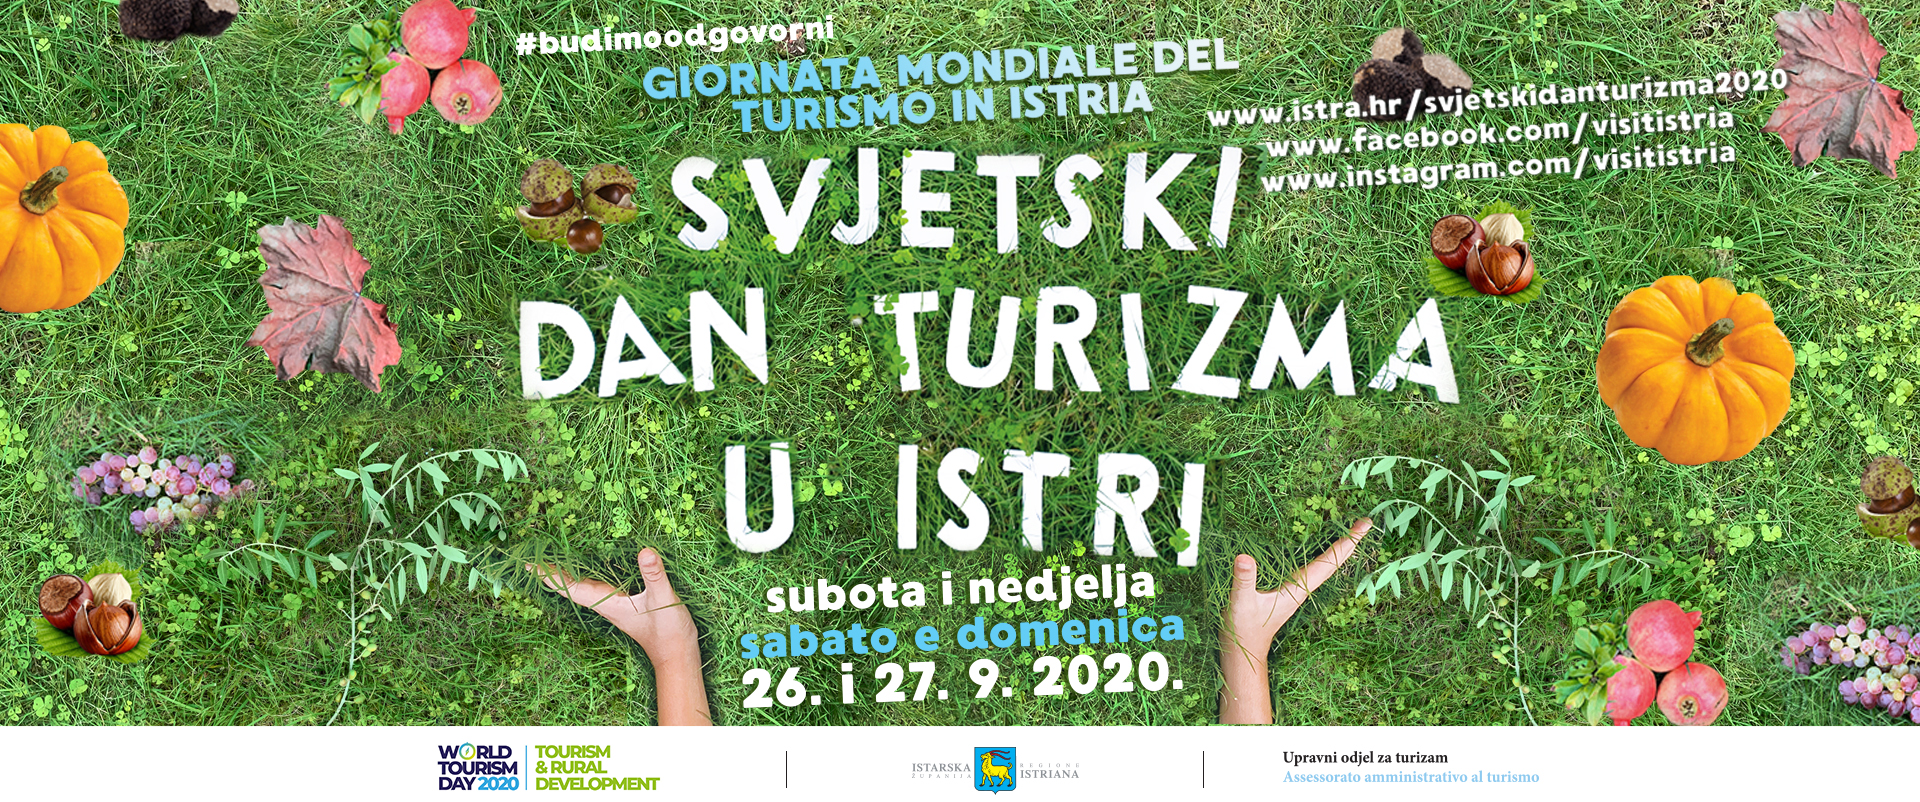 World Tourism Day in Istria